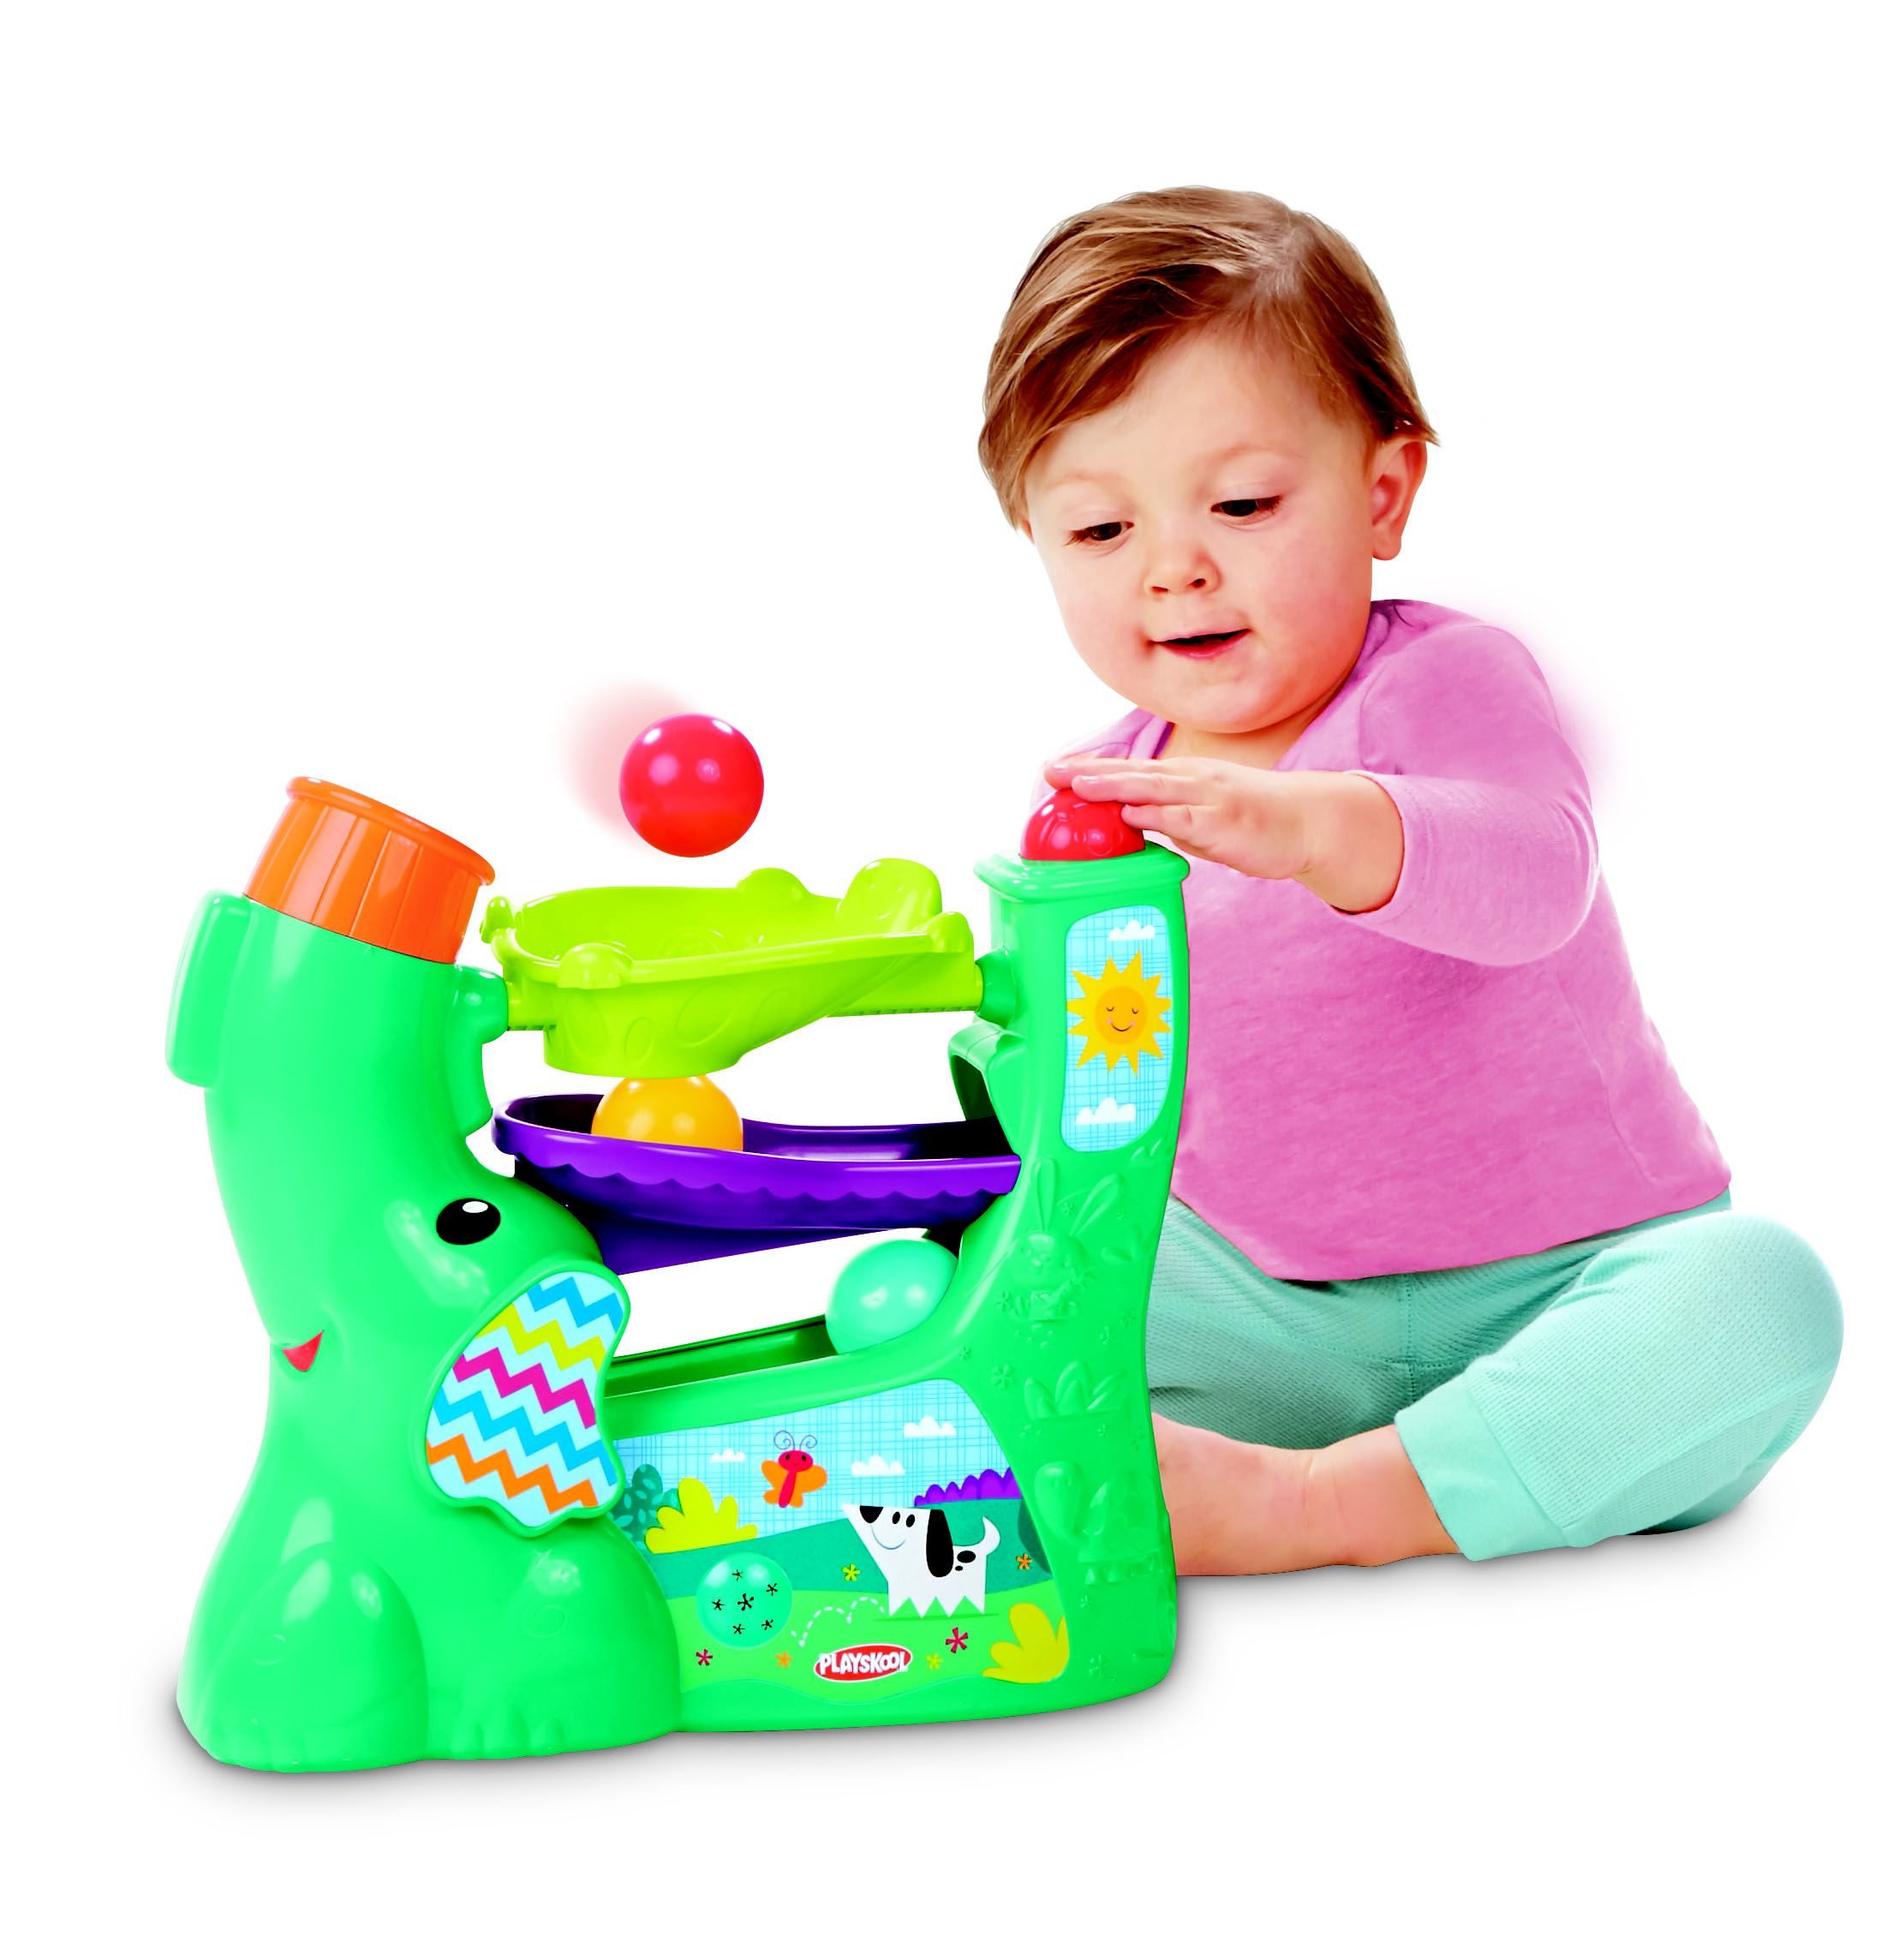 What Are The Best Toys for Infants